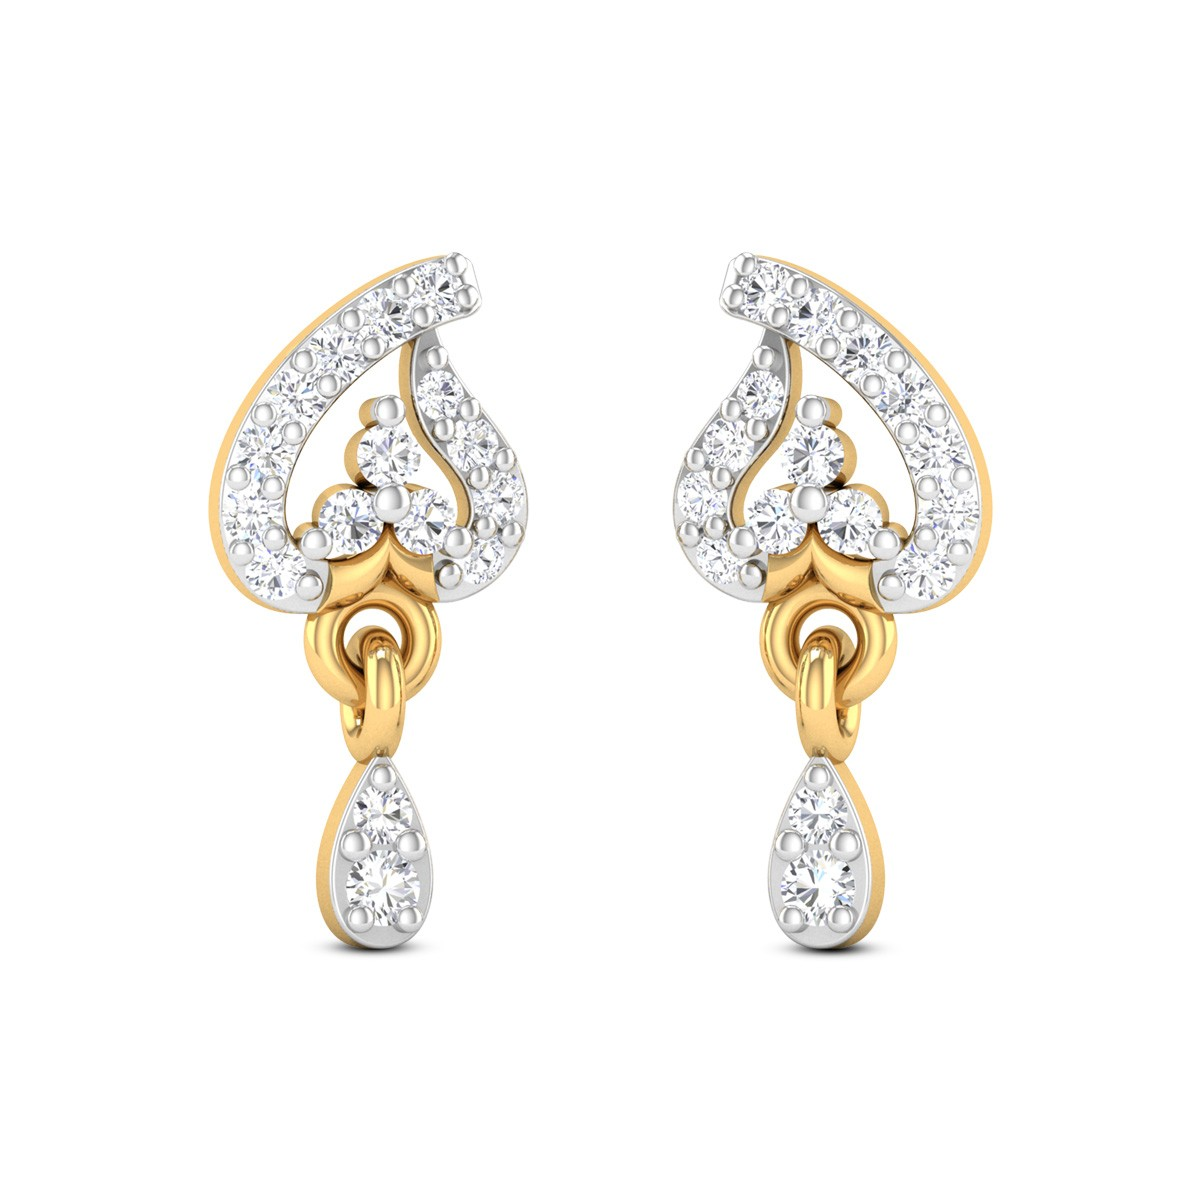 Angita Diamond Earrings